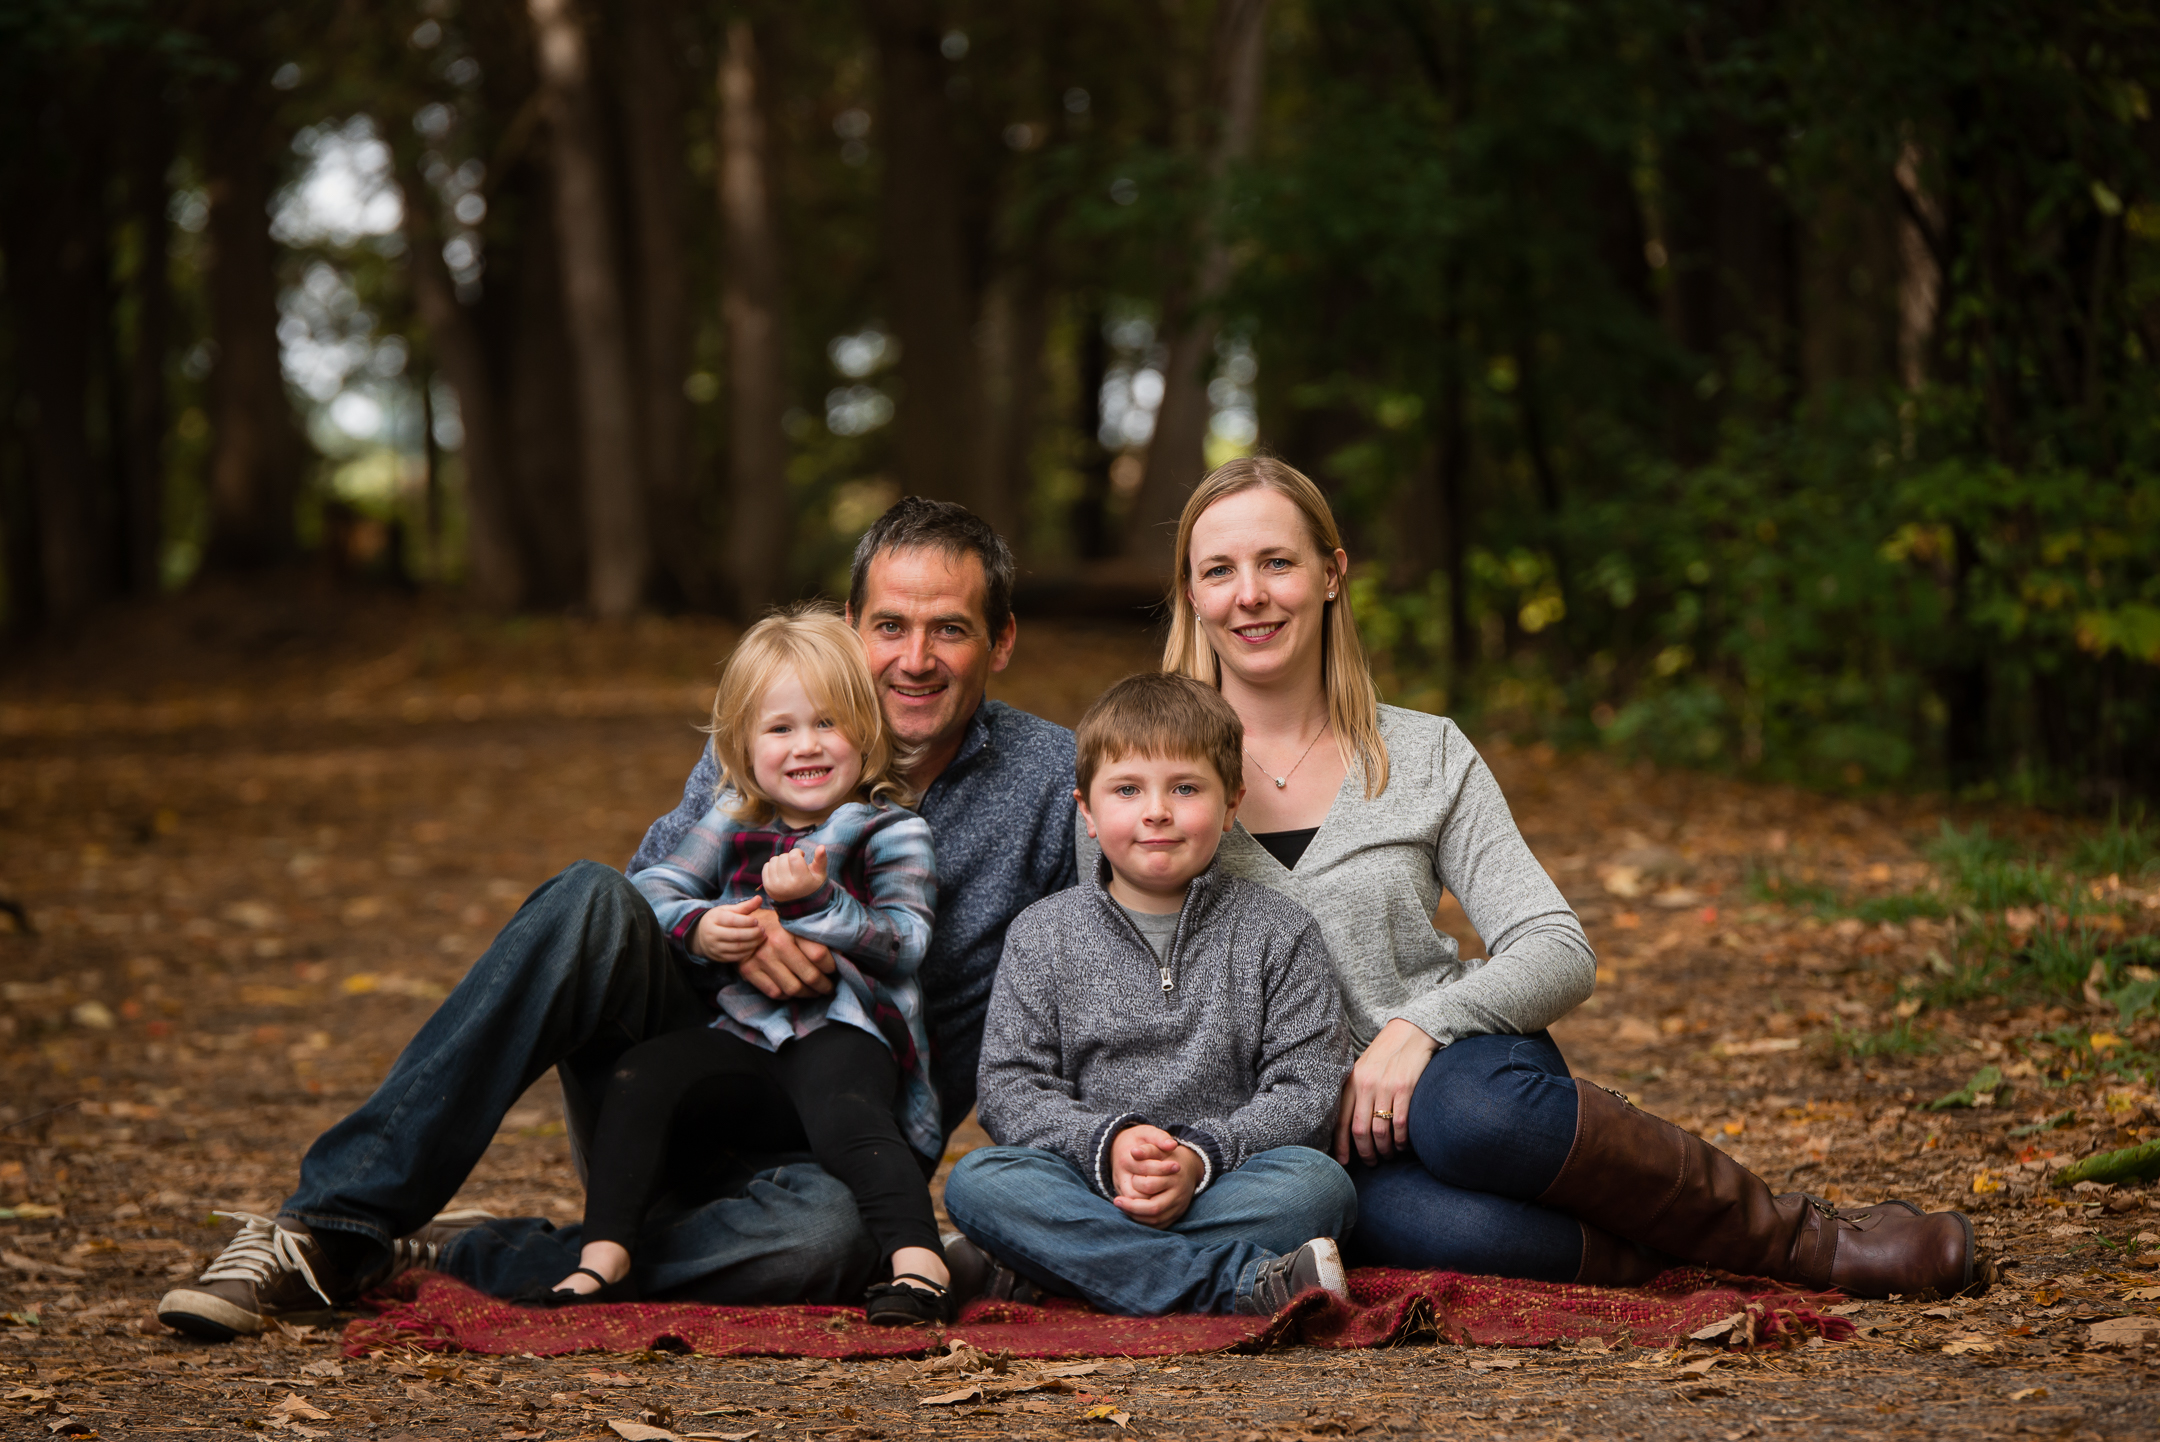 Naomi Lucienne Photography - Extended Family - 171007535.jpg